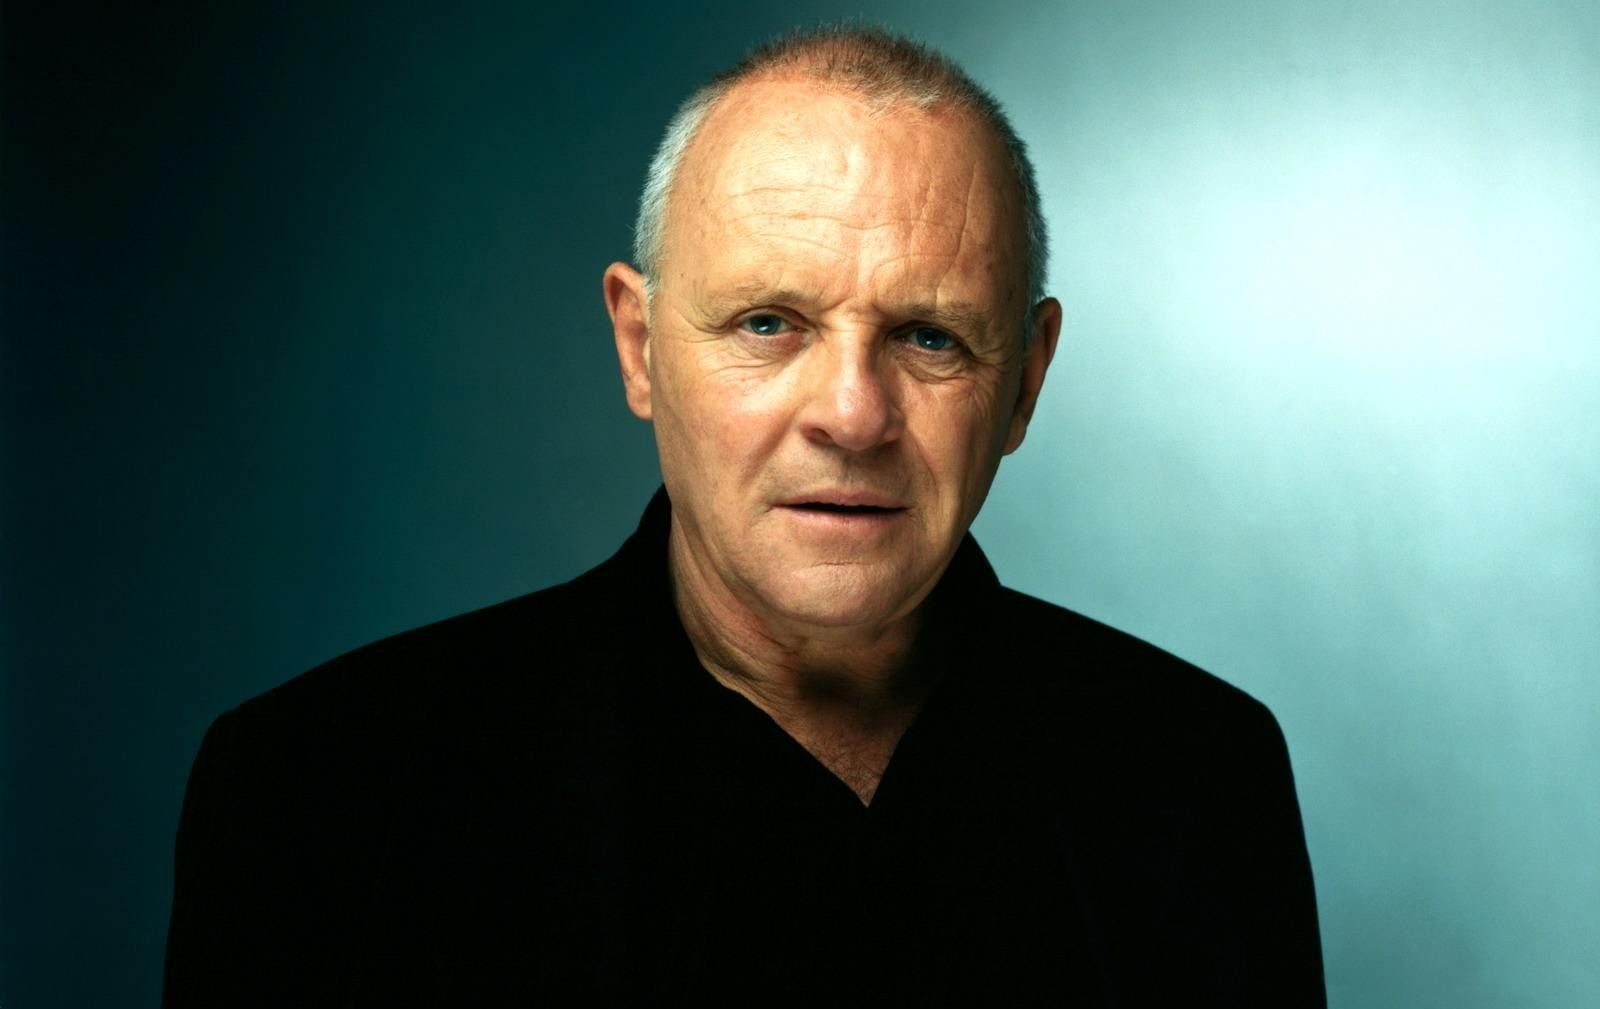 Anthony Hopkins arrive dans Transformers 5 !